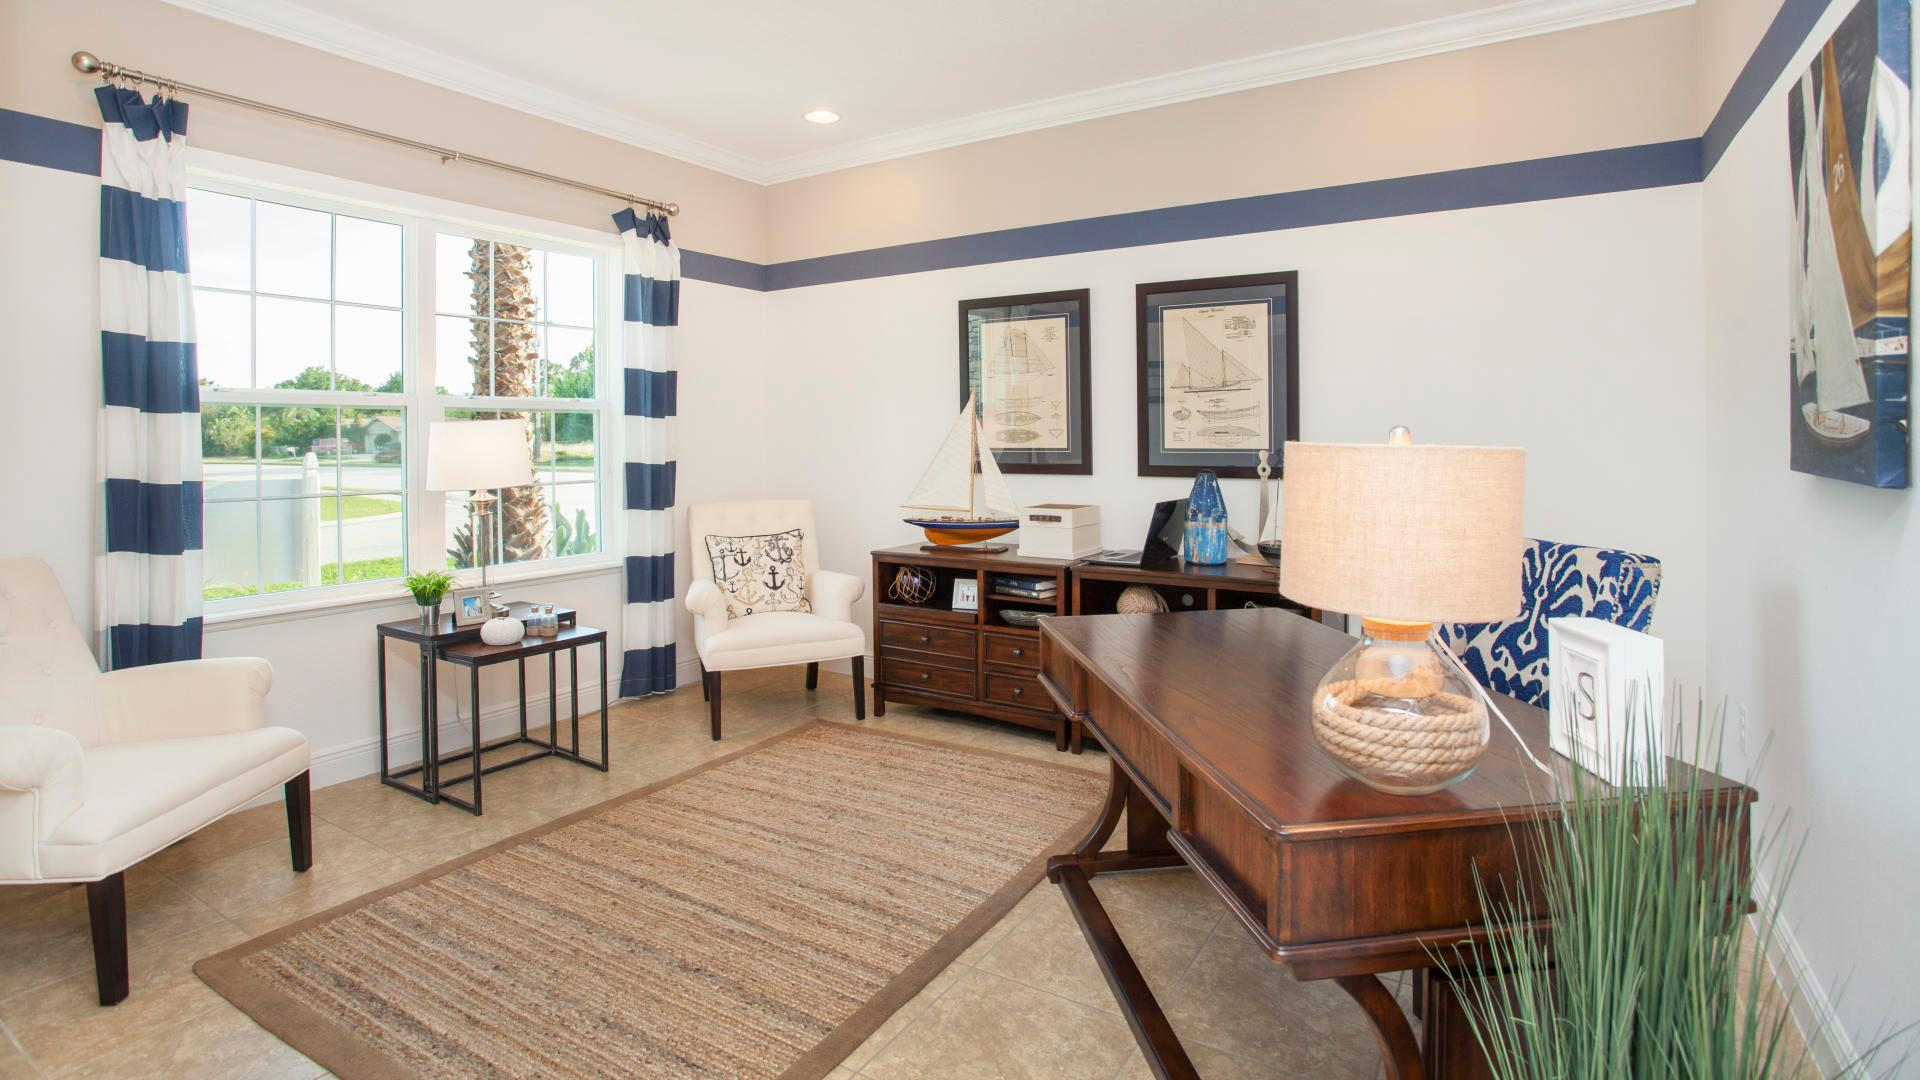 Living Area featured in the Melody By Maronda Homes in Daytona Beach, FL